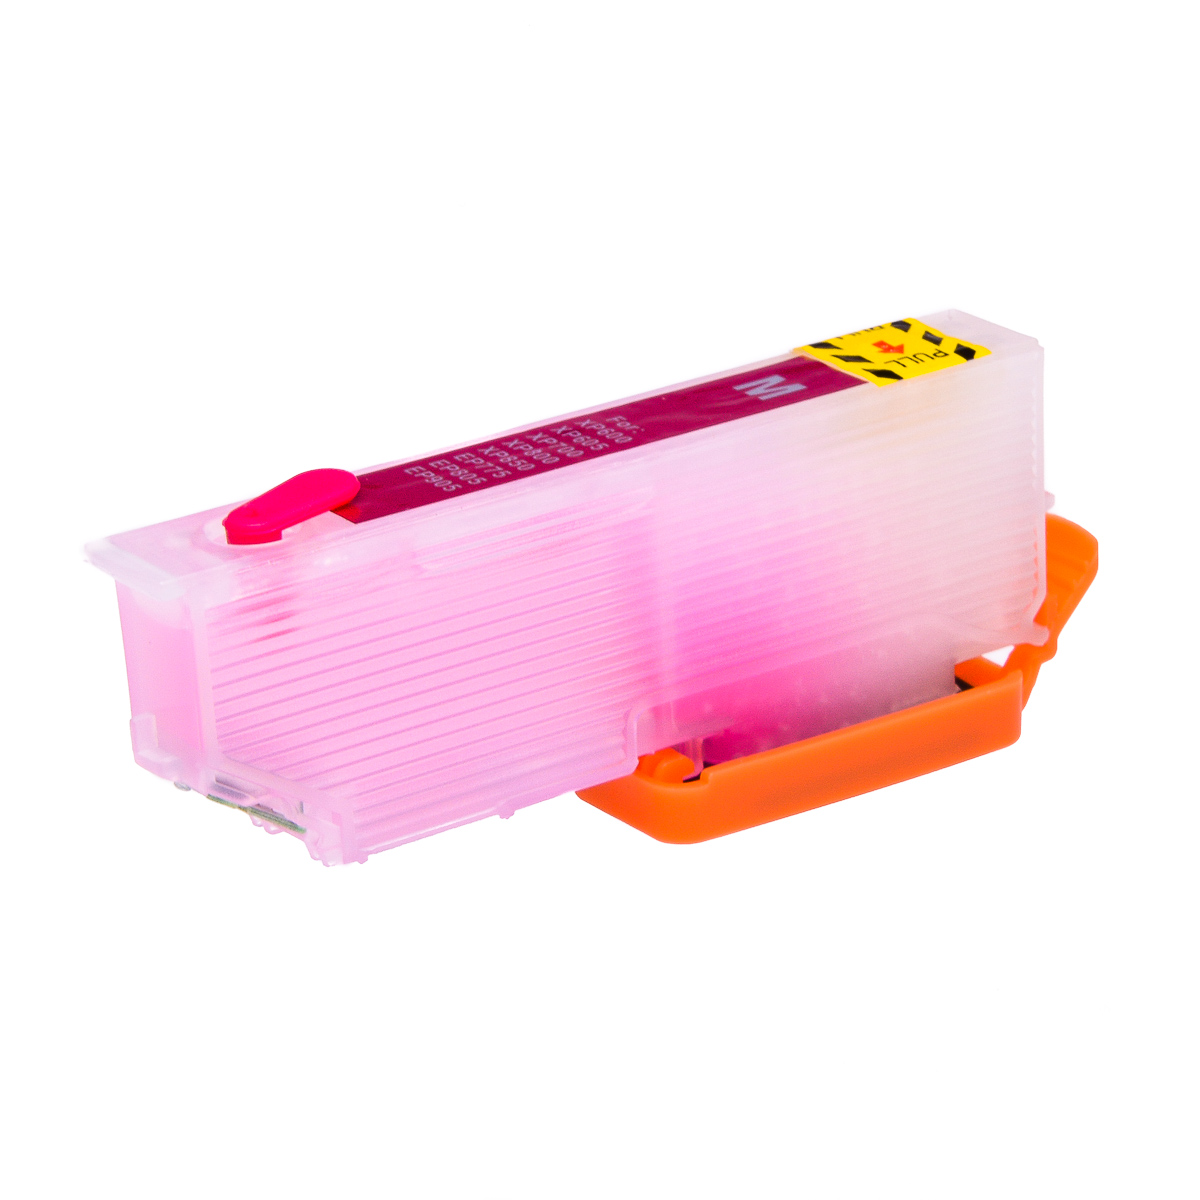 Magenta printhead cleaning cartridge for Epson XP-820 printer